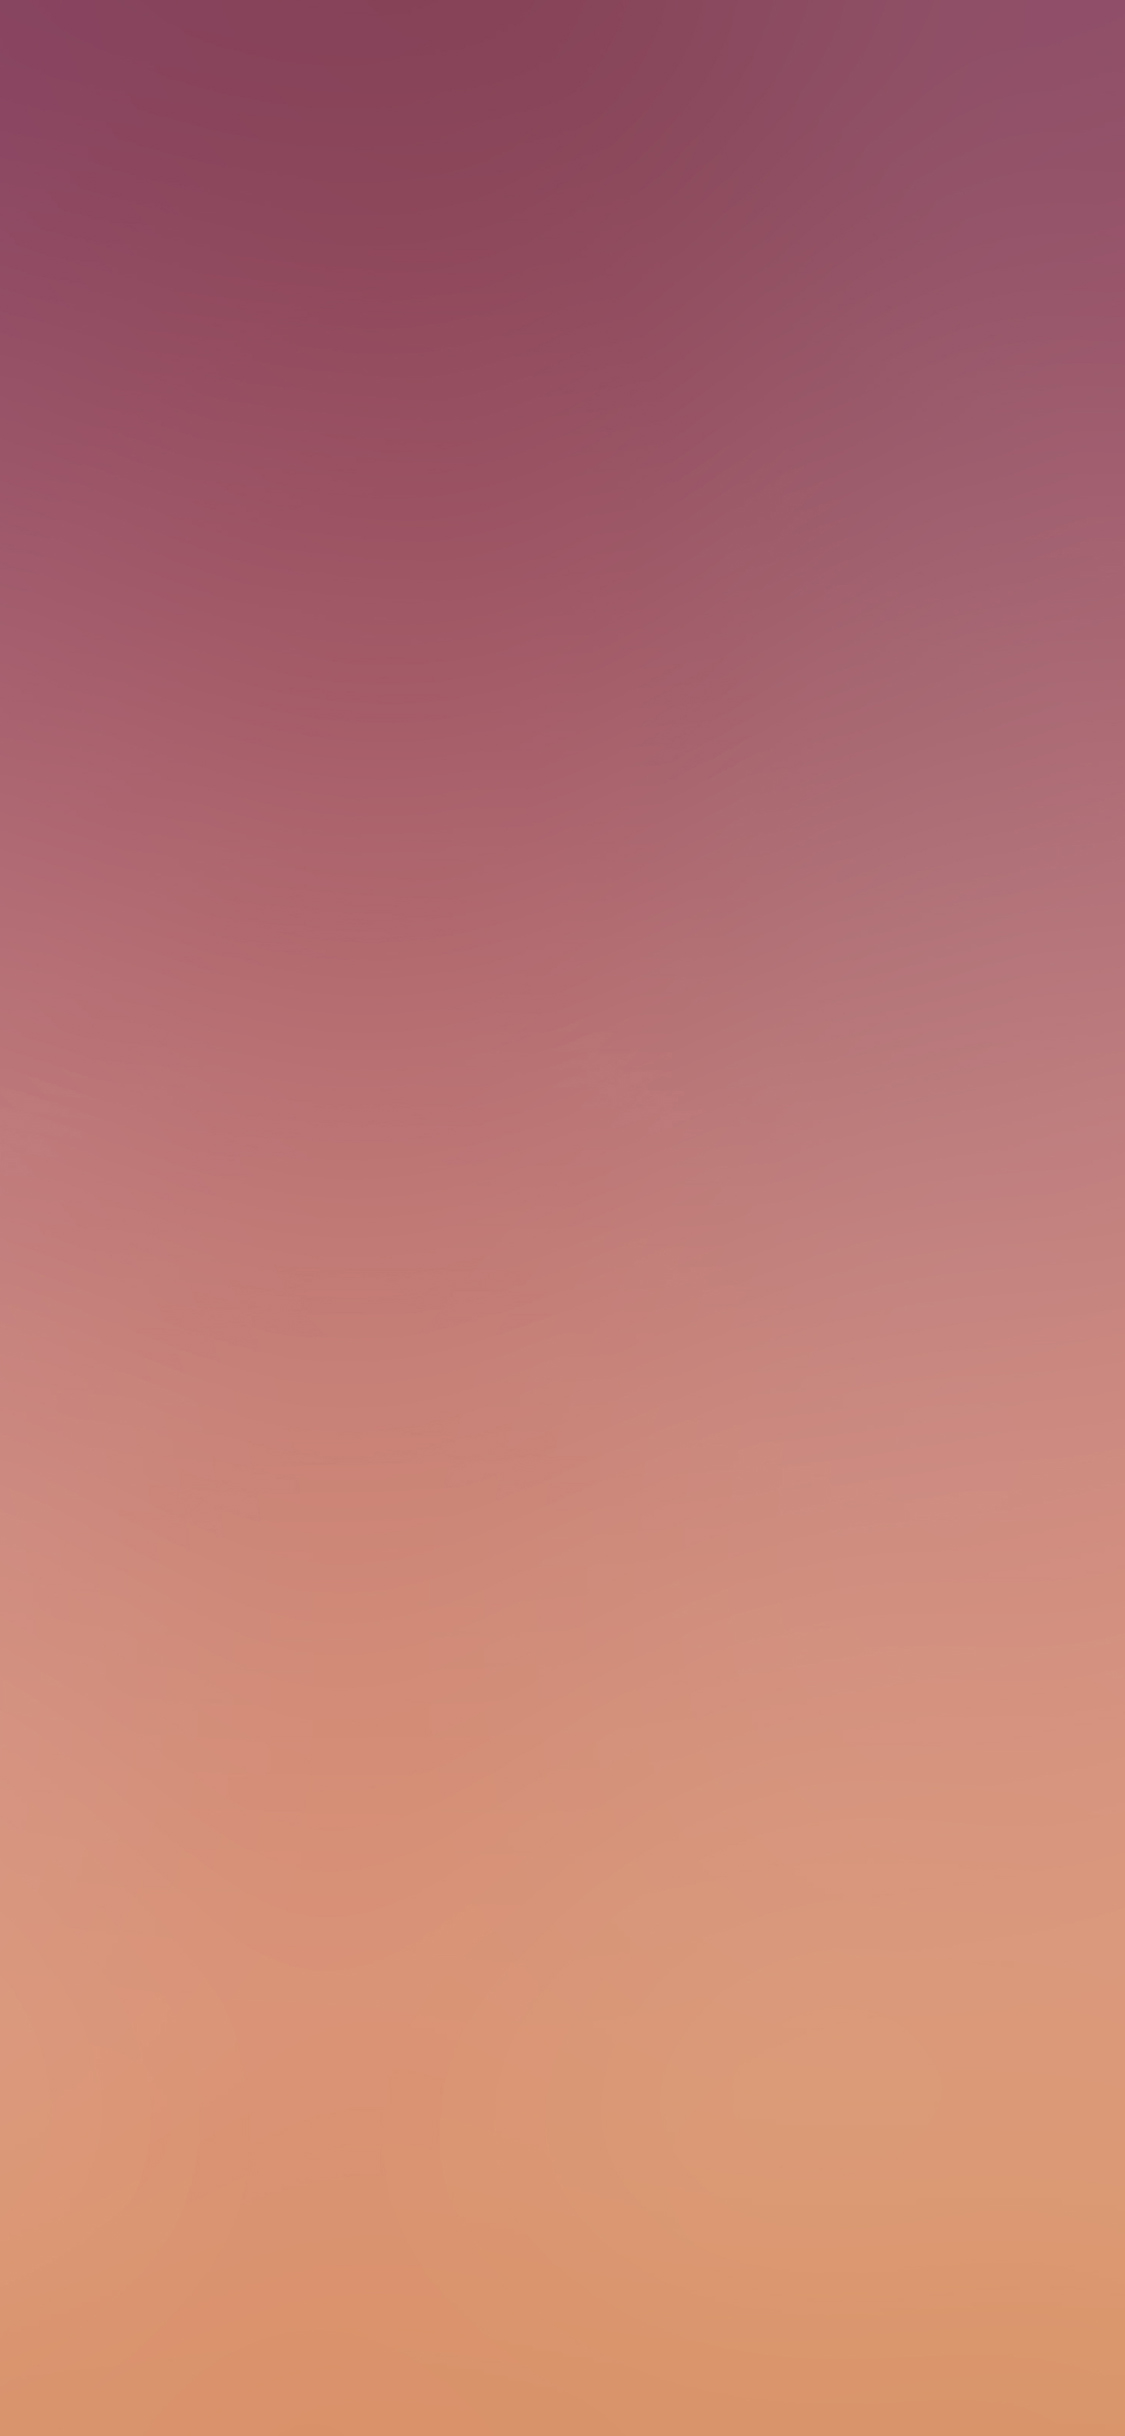 iPhoneXpapers.com-Apple-iPhone-wallpaper-sd48-soft-love-relationship-gradation-blur